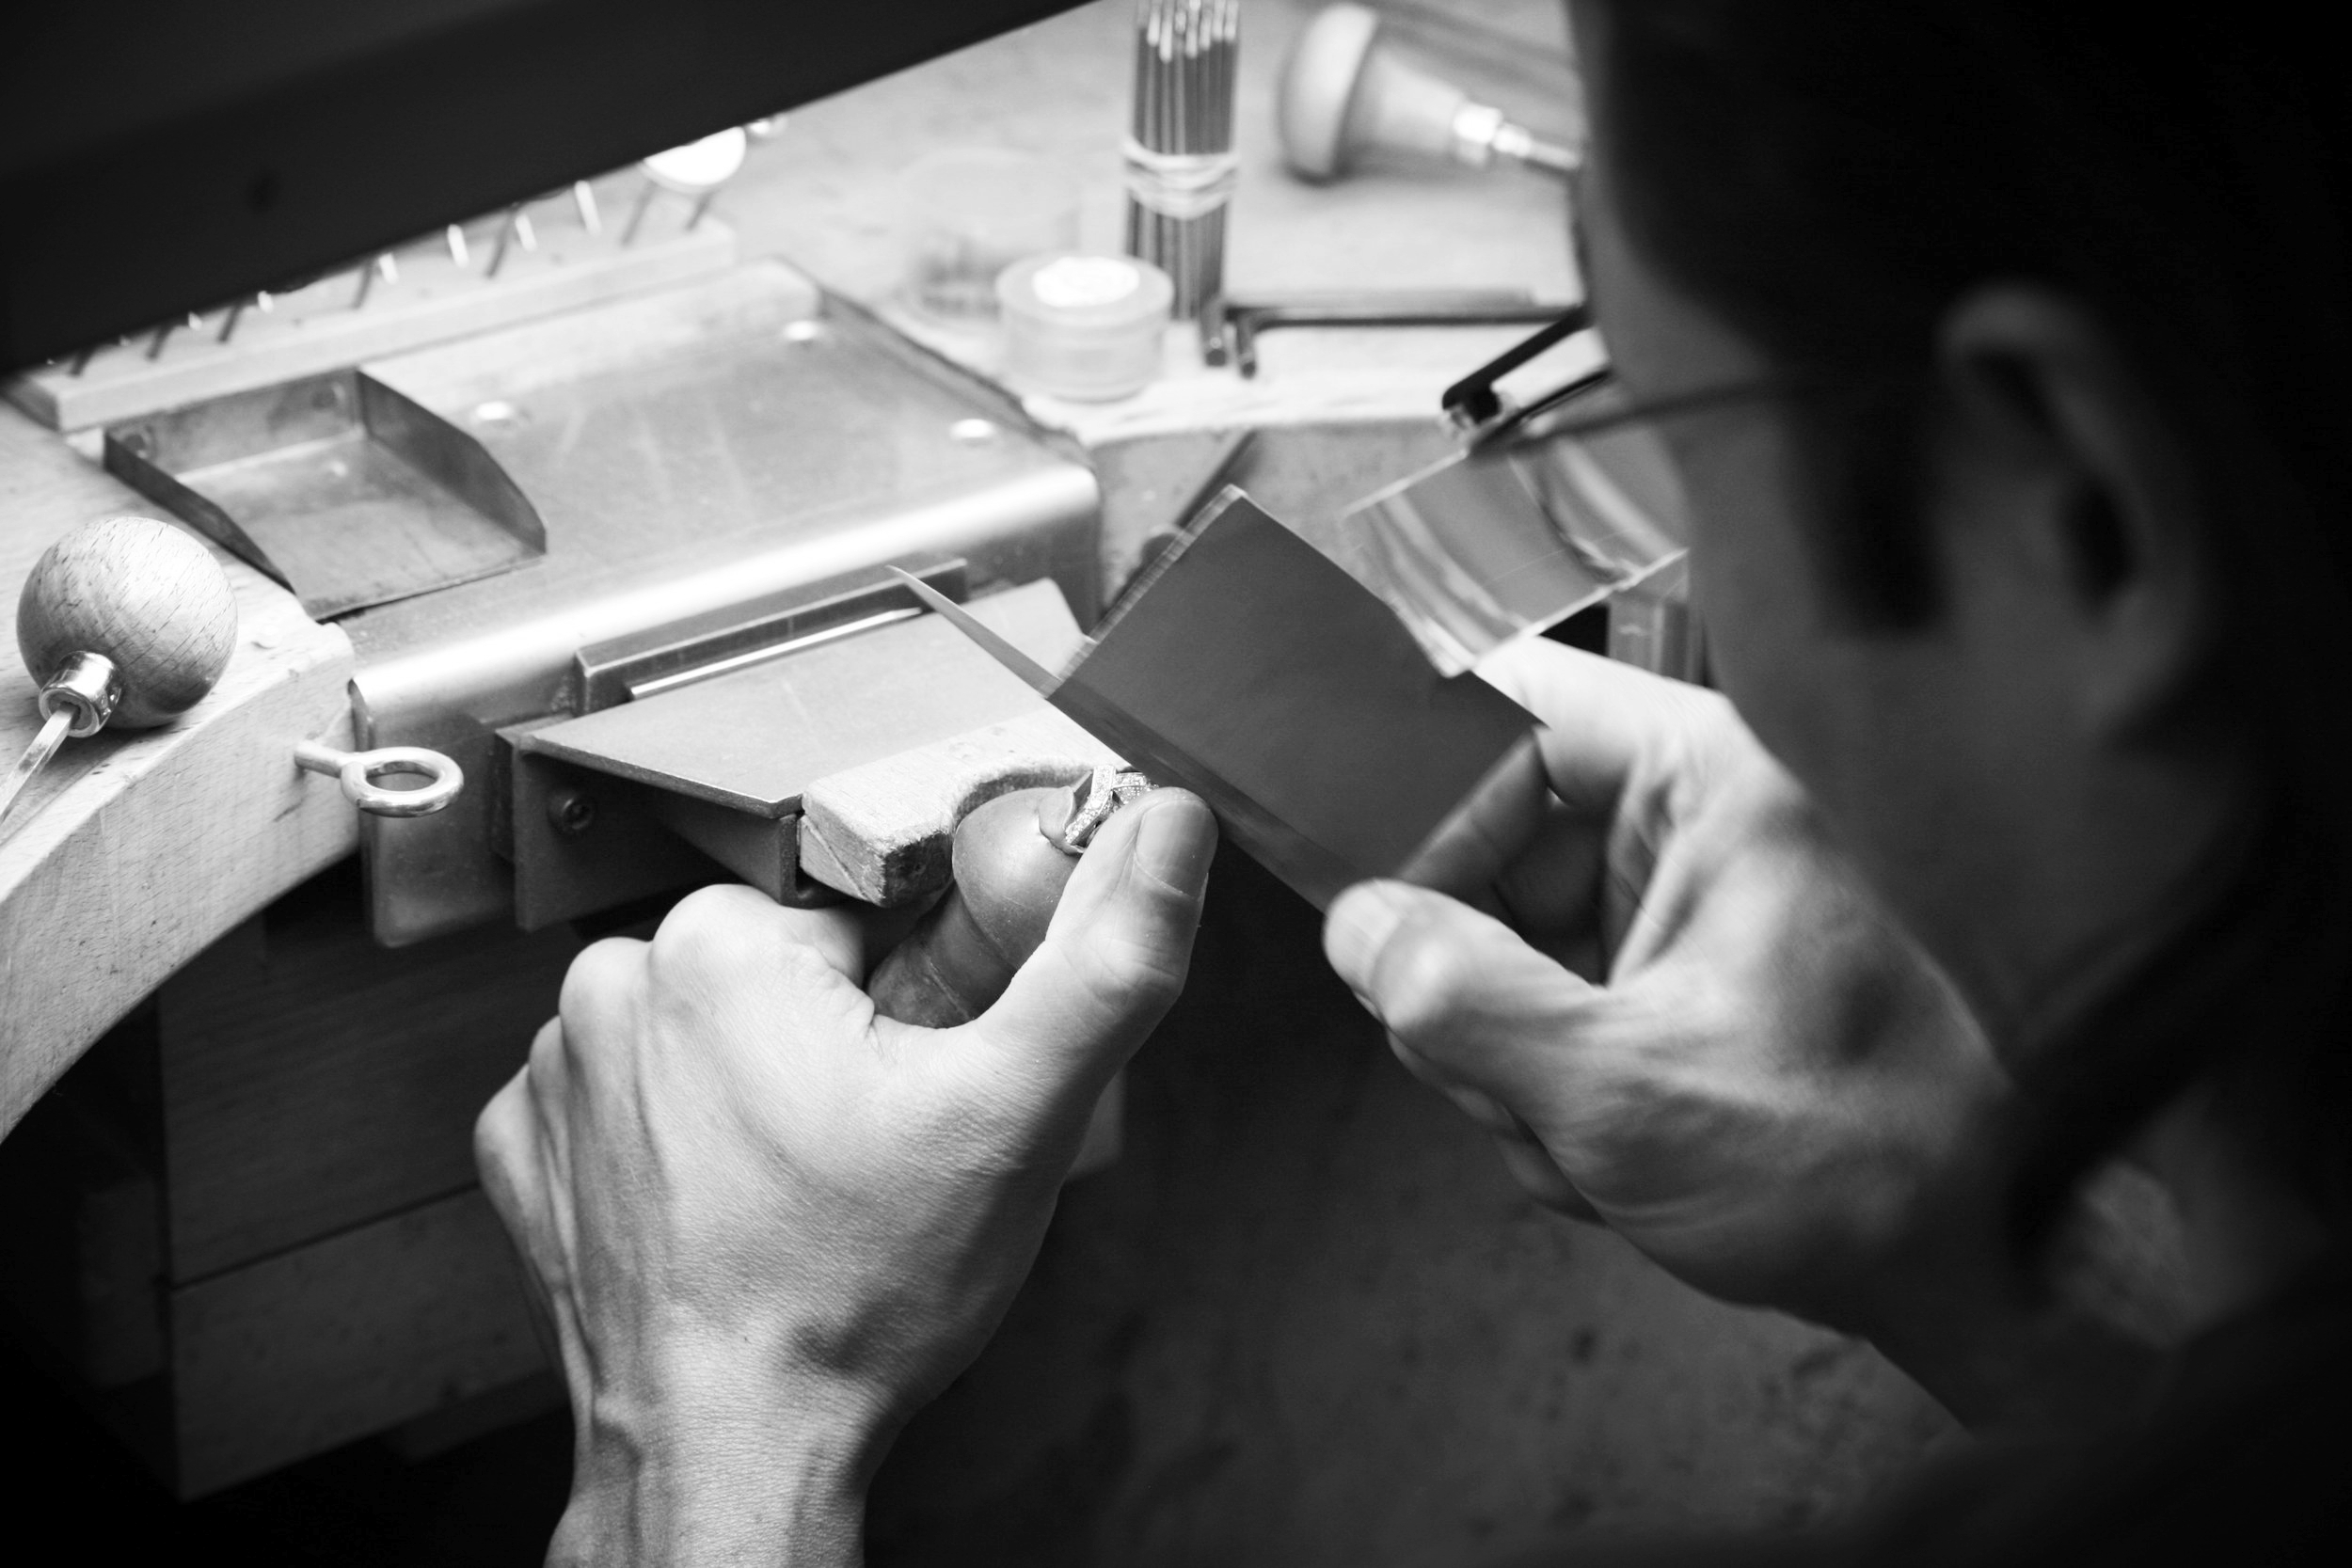 Authentic Craftsmanship - Each jewel of Van der Veken is carefully forged by hand by our Master-Goldsmiths